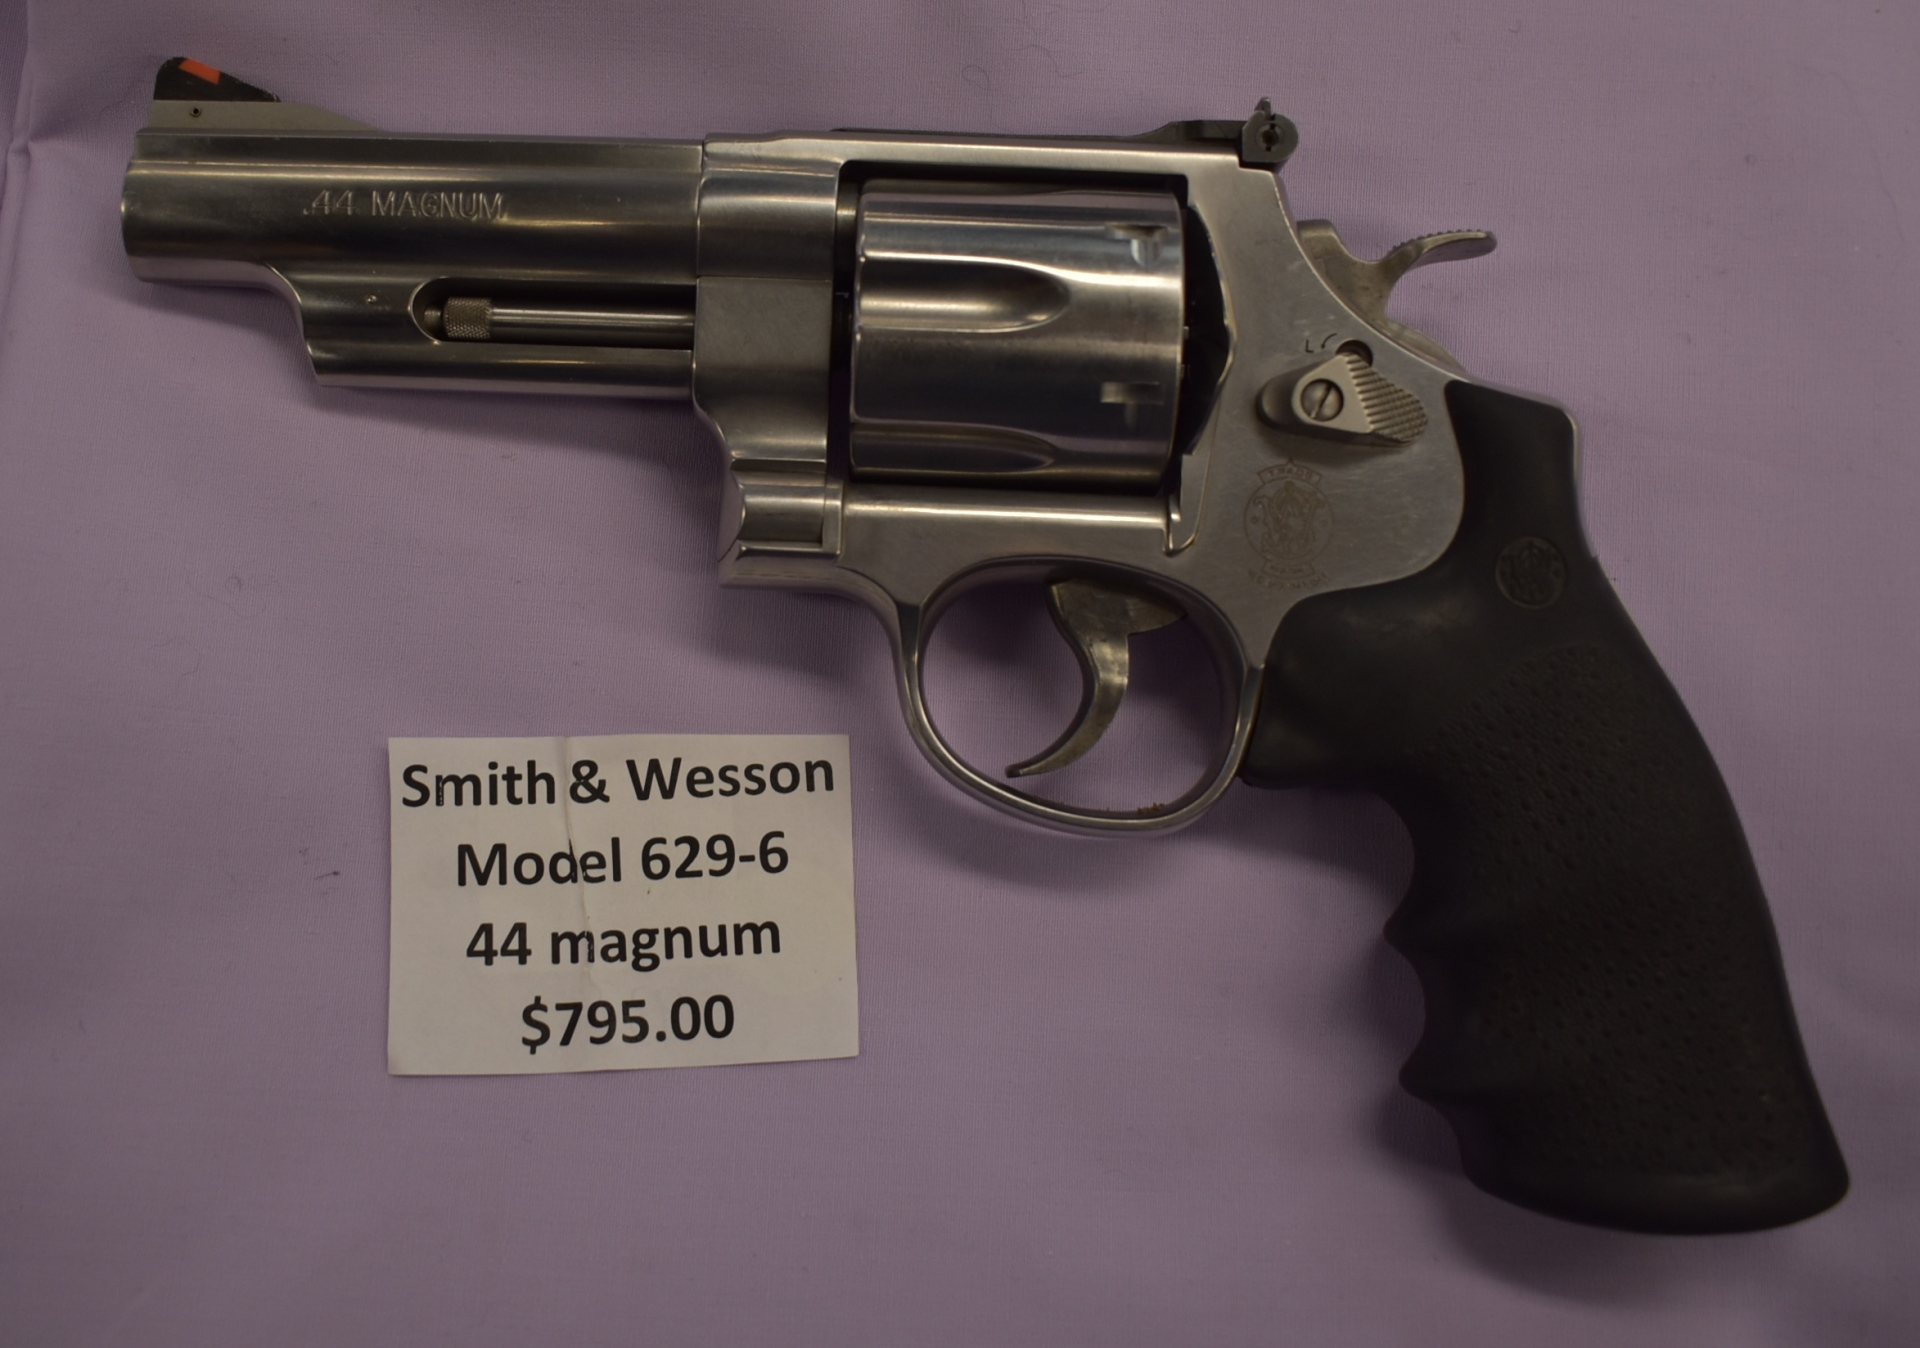 Smith & Wesson 629-6